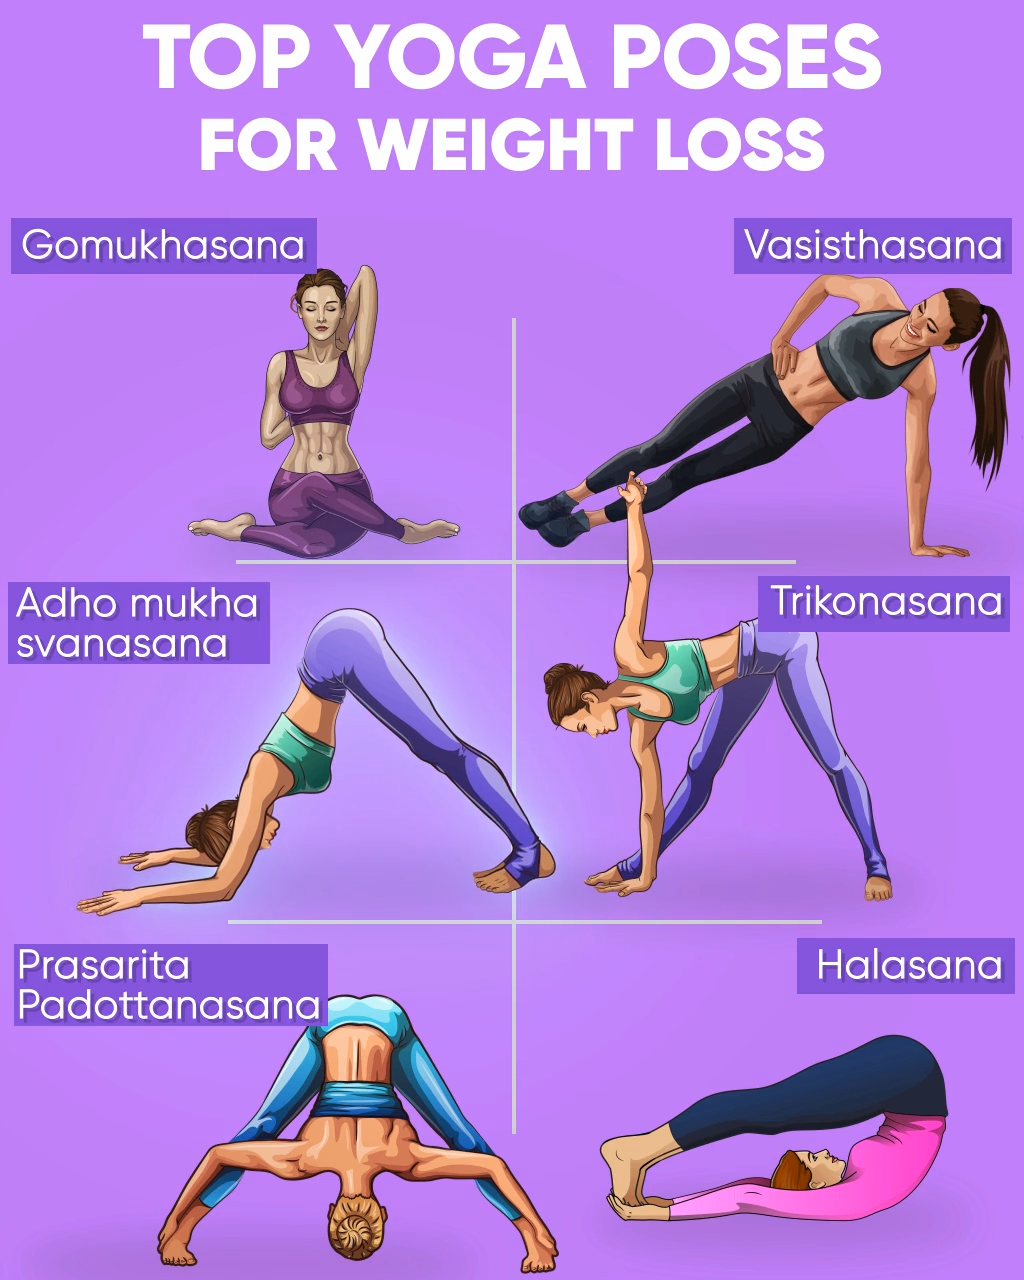 Top Yoga Poses To Lose Extra Weight Video Yoga Poses Top Yoga Poses Yoga